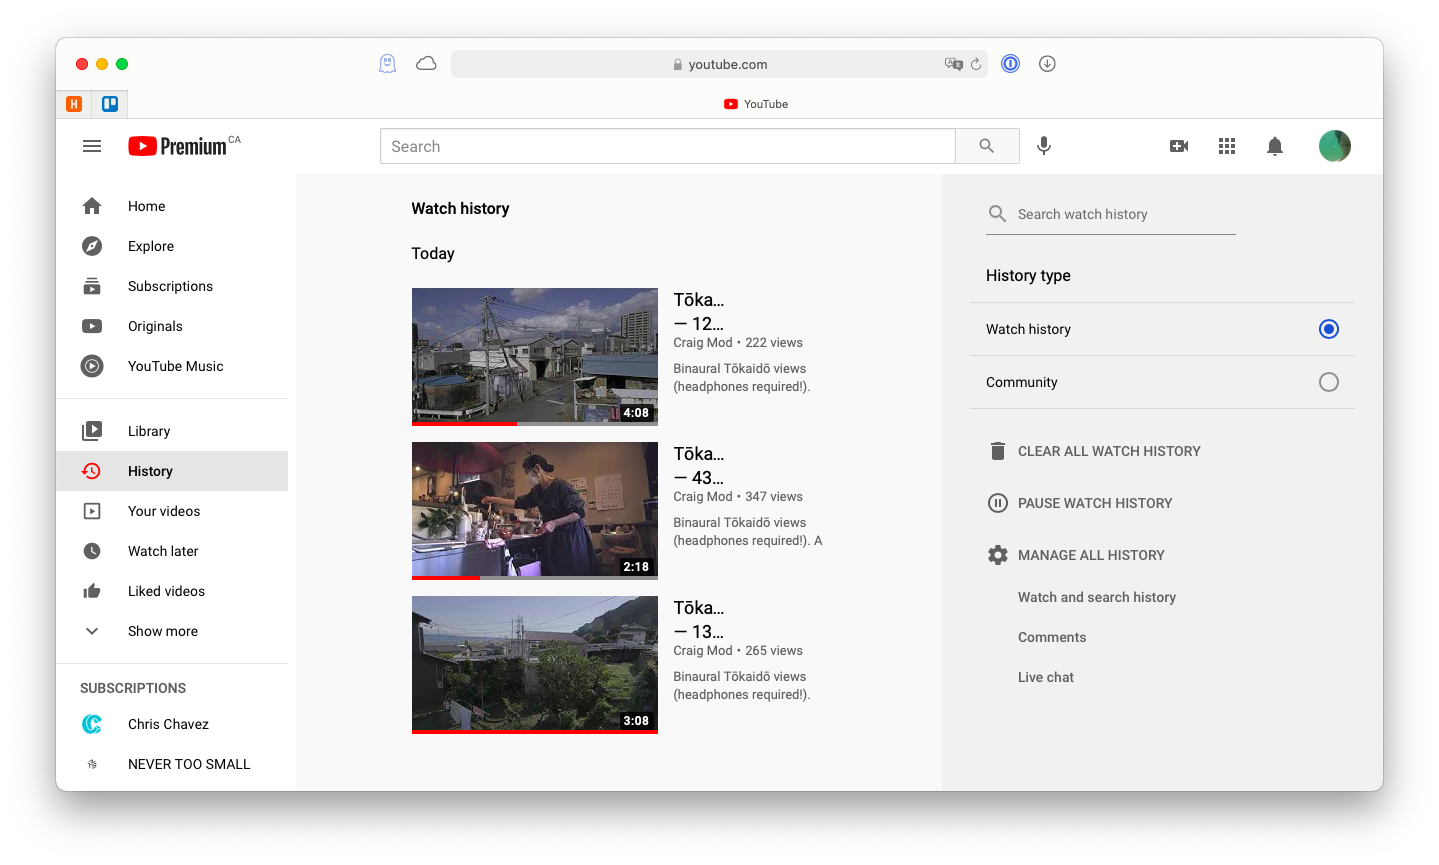 YouTube's watch history